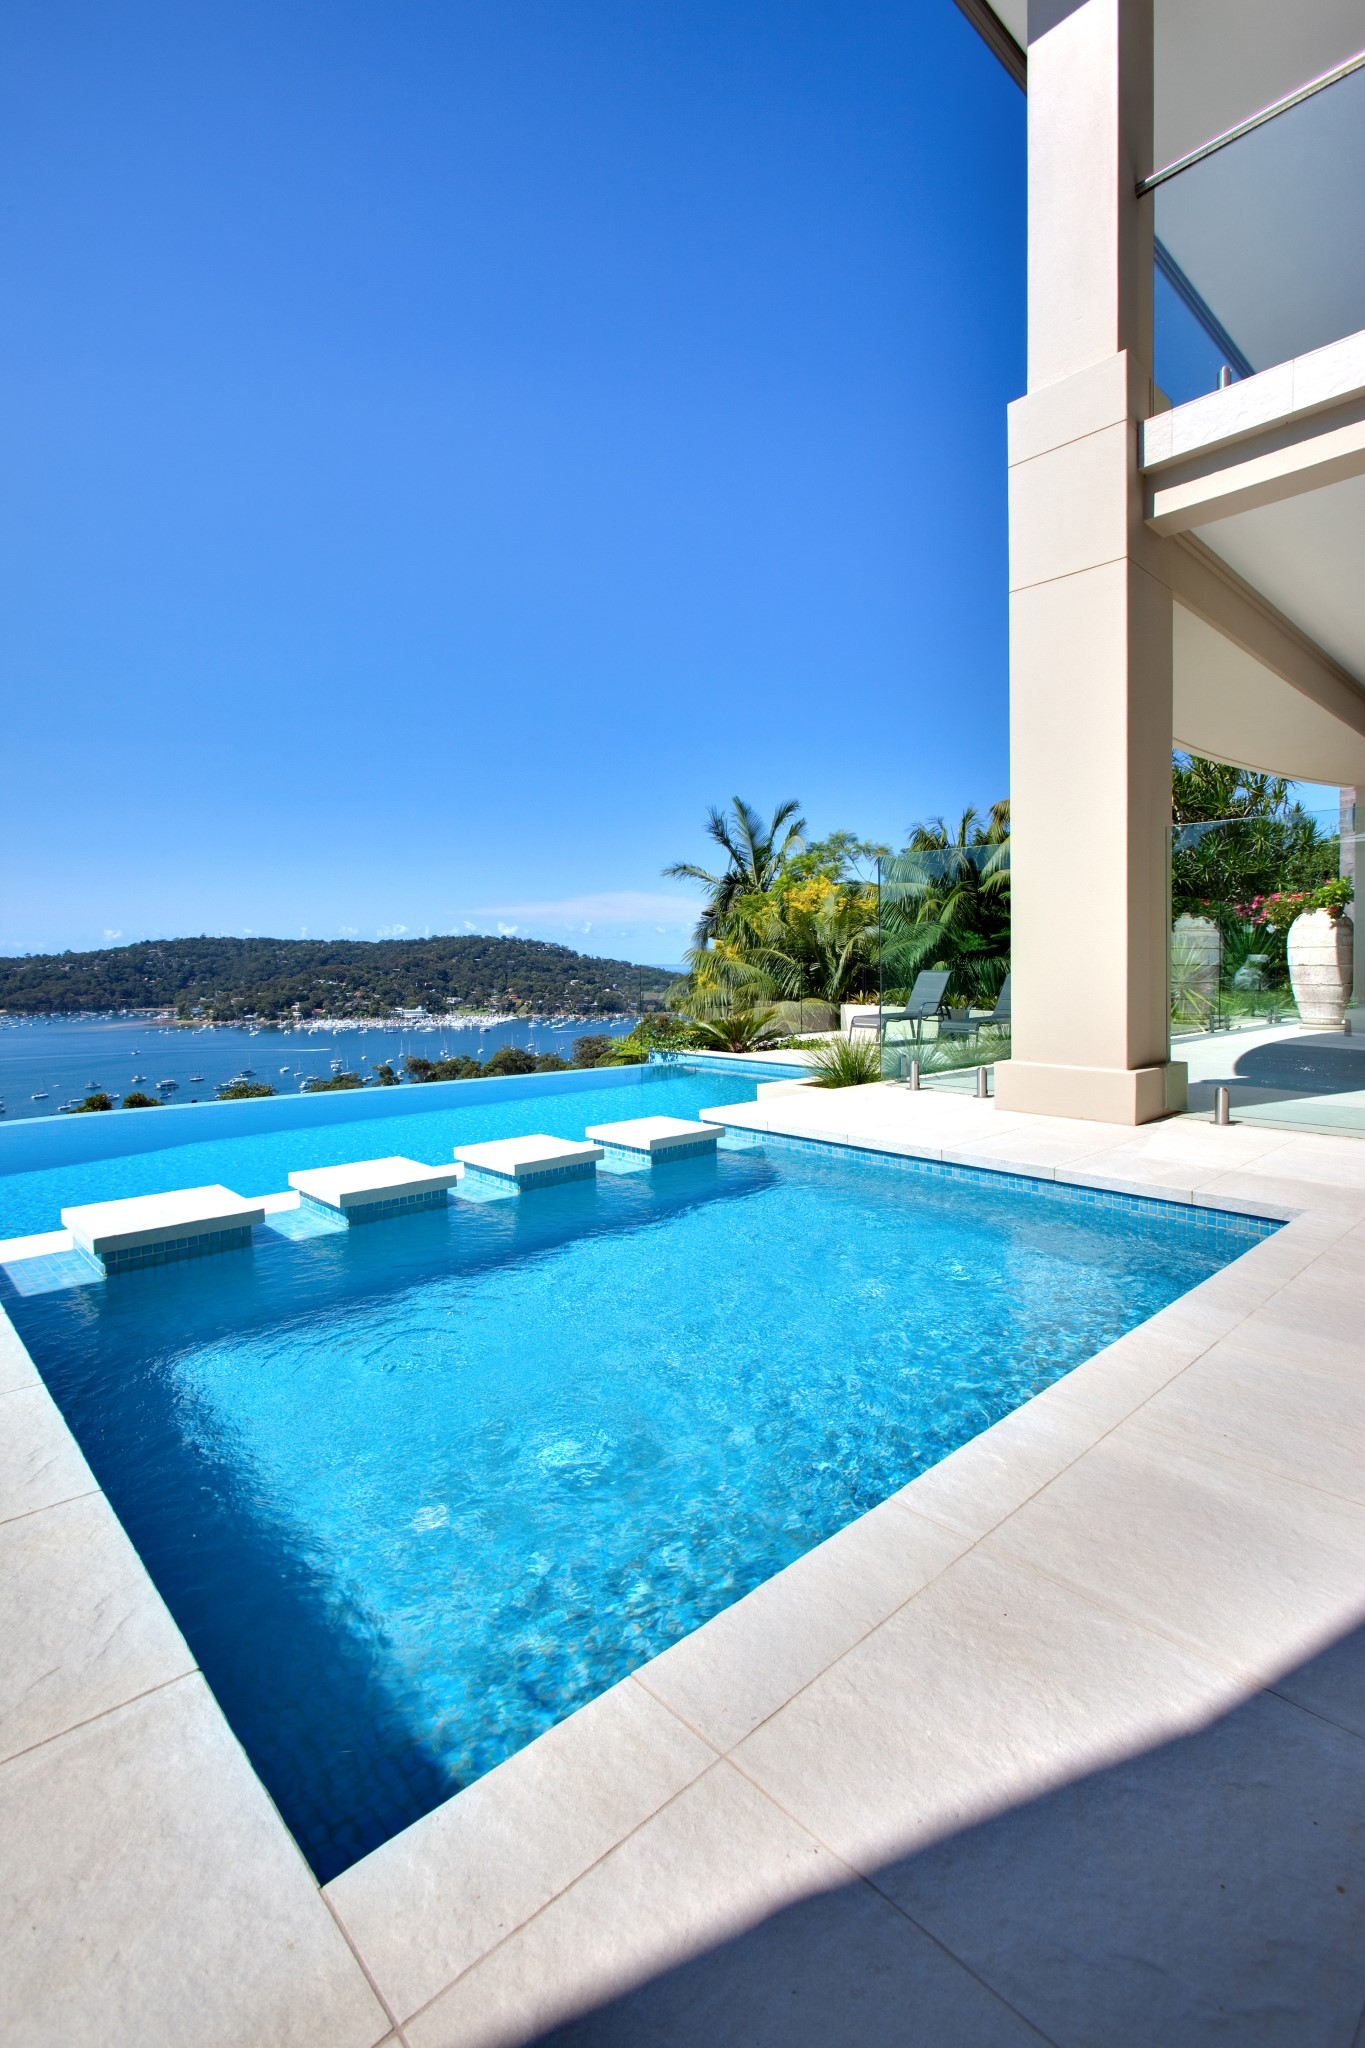 Infinity Edge Swimming Pool of the luxury house with a view to the ocean